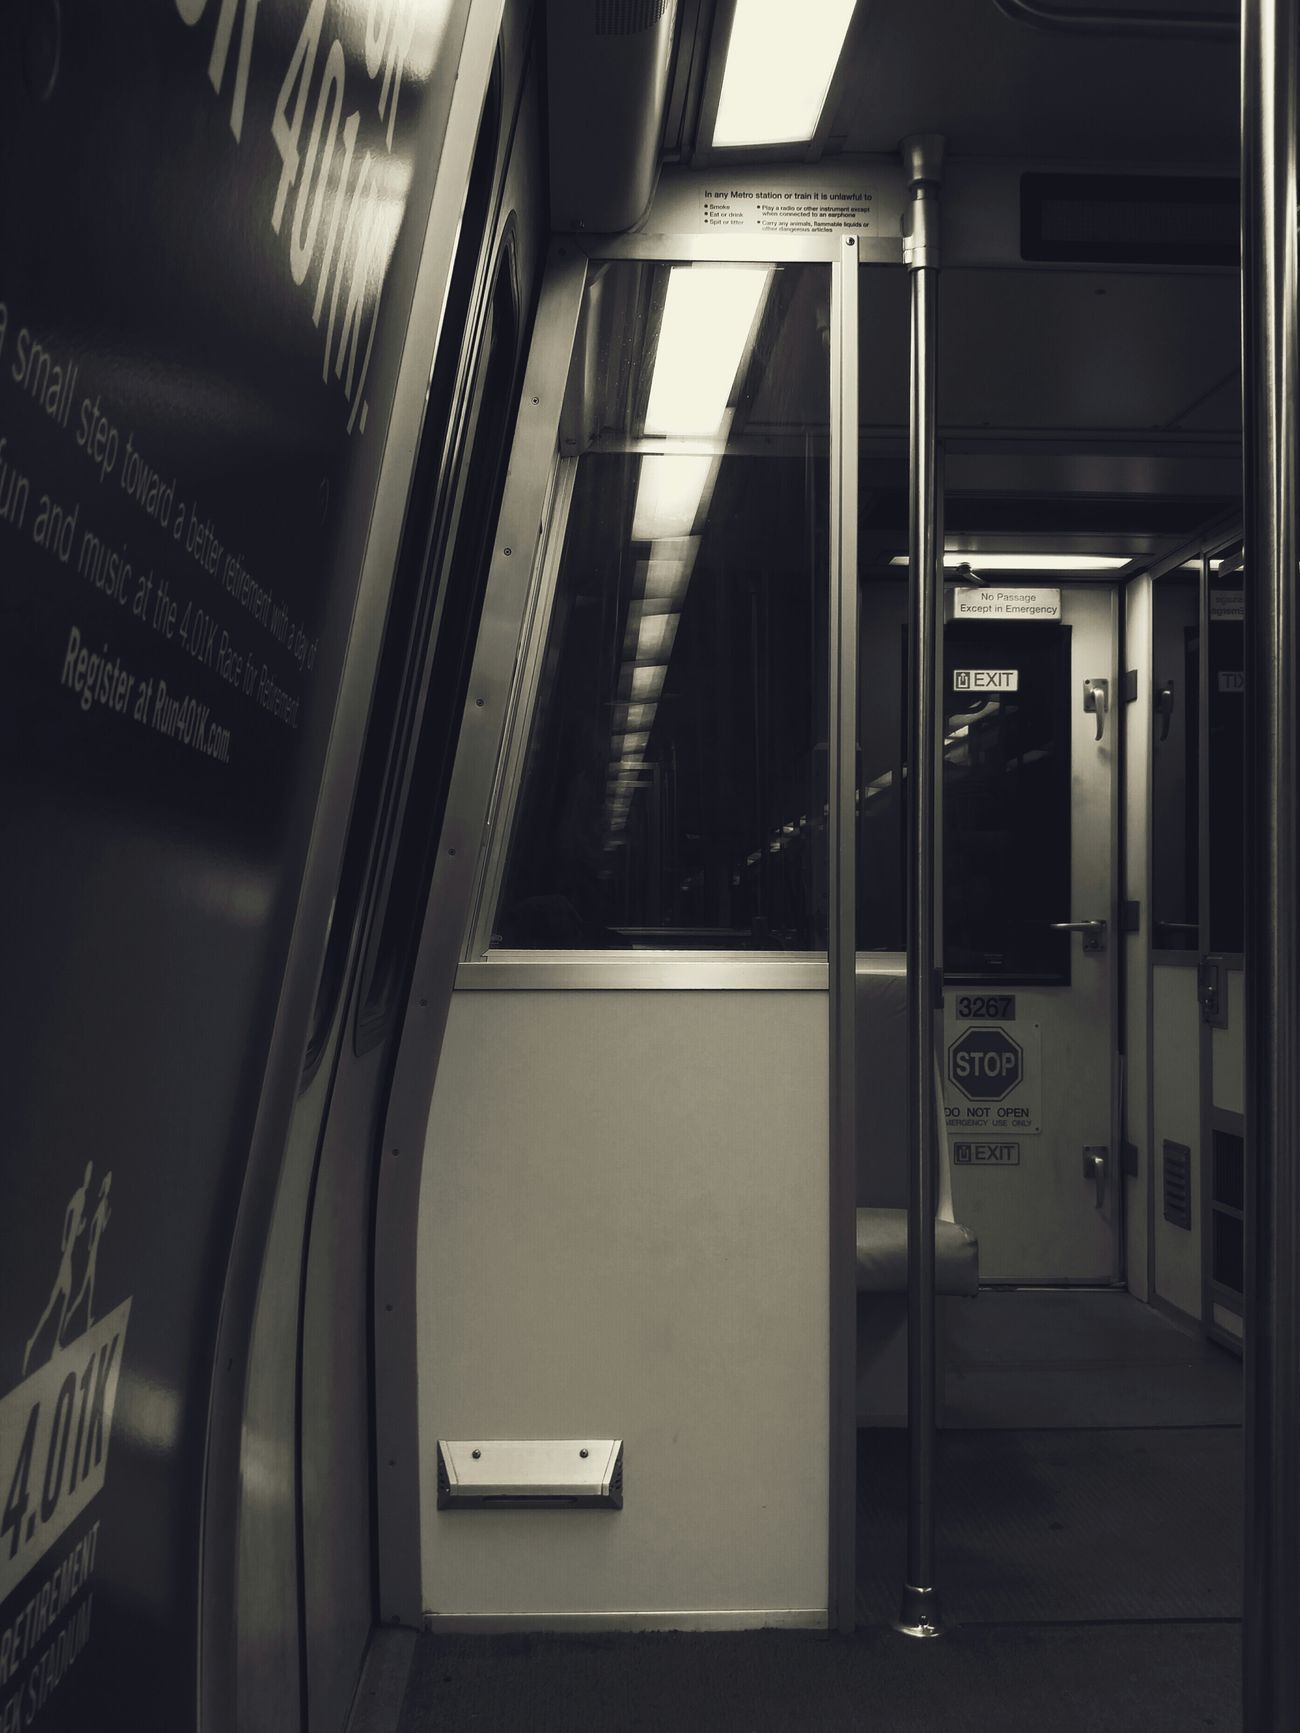 Late Night Metro Ride. BadAnimals Images 2015. Mobilephotography LGG4 Monochrome Eerie Subway Urbanphotography Underground Eyeemdaily Photography